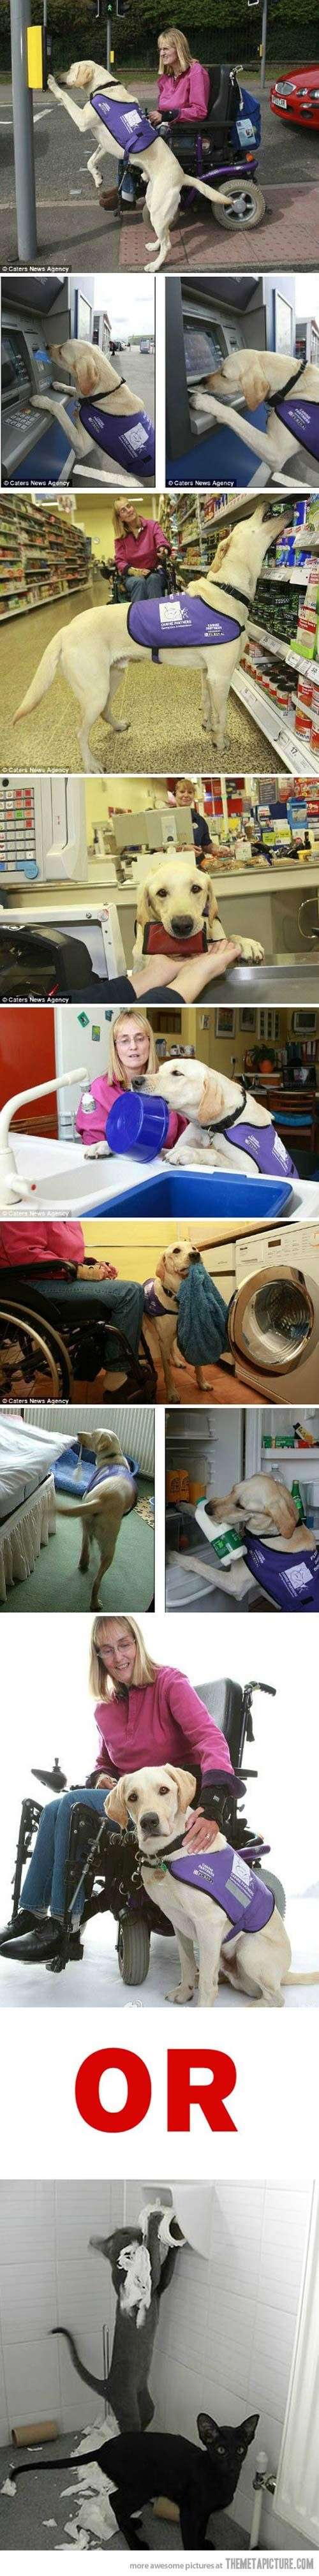 Dogs vs. Cats…: Cat, Animals, Awesome Dog, Pet, Service Dogs, Friend